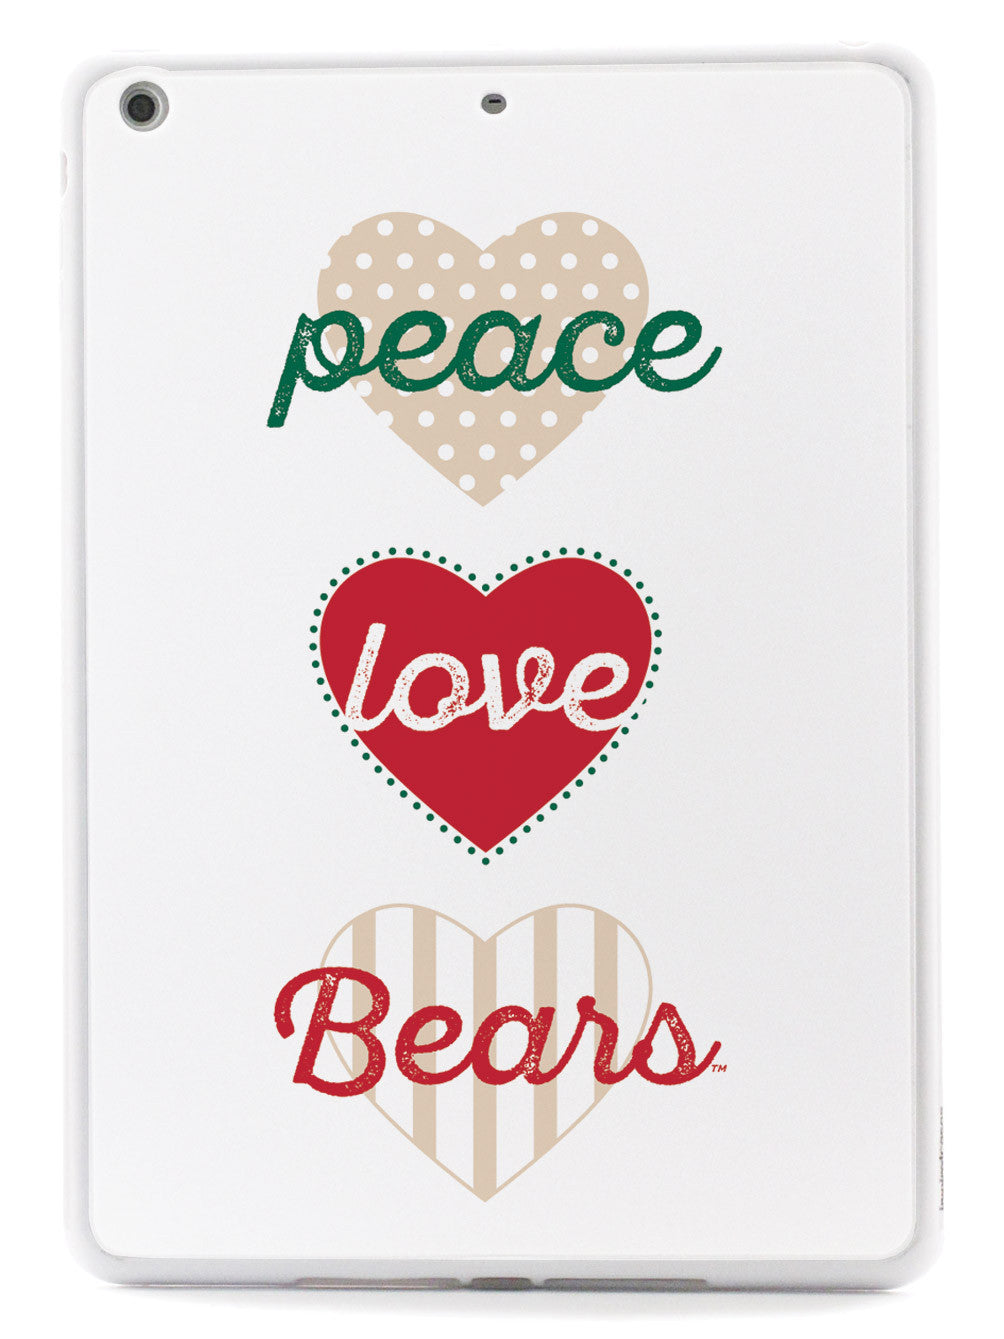 Peace, Love, Bears - Washington University, St Louis Case